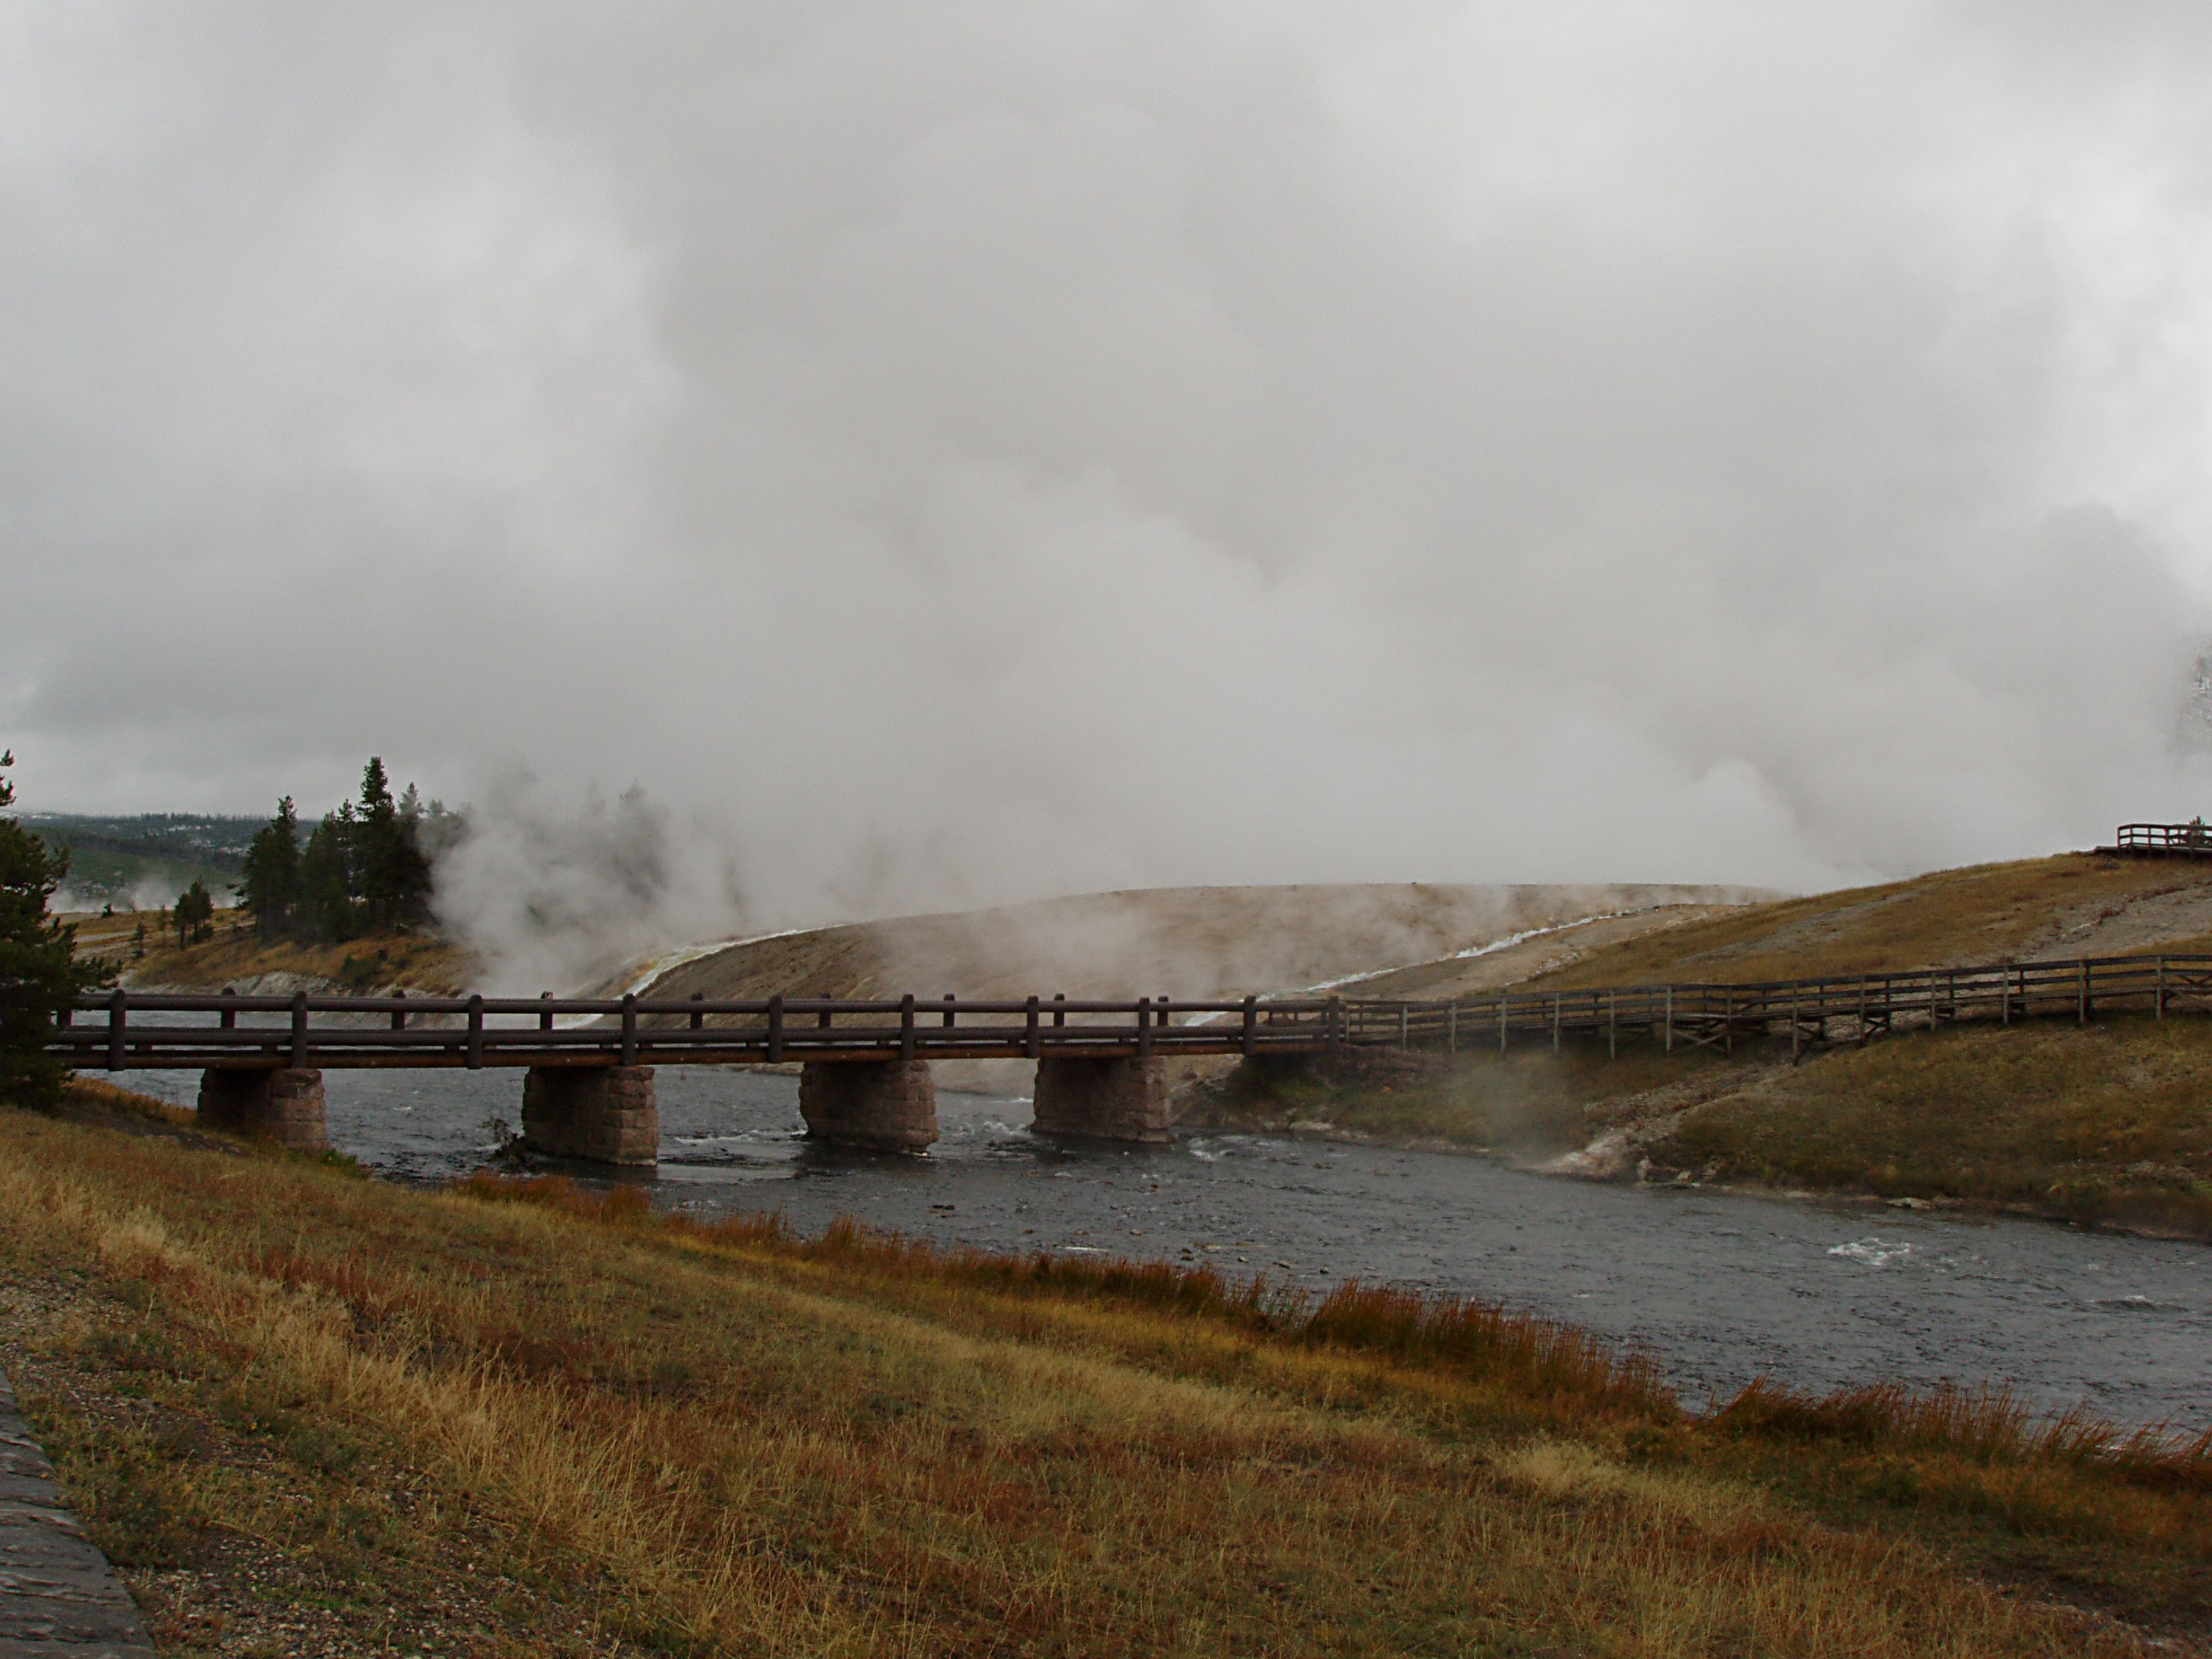 Footbridge over the Firehole River at Excelsior Geyser